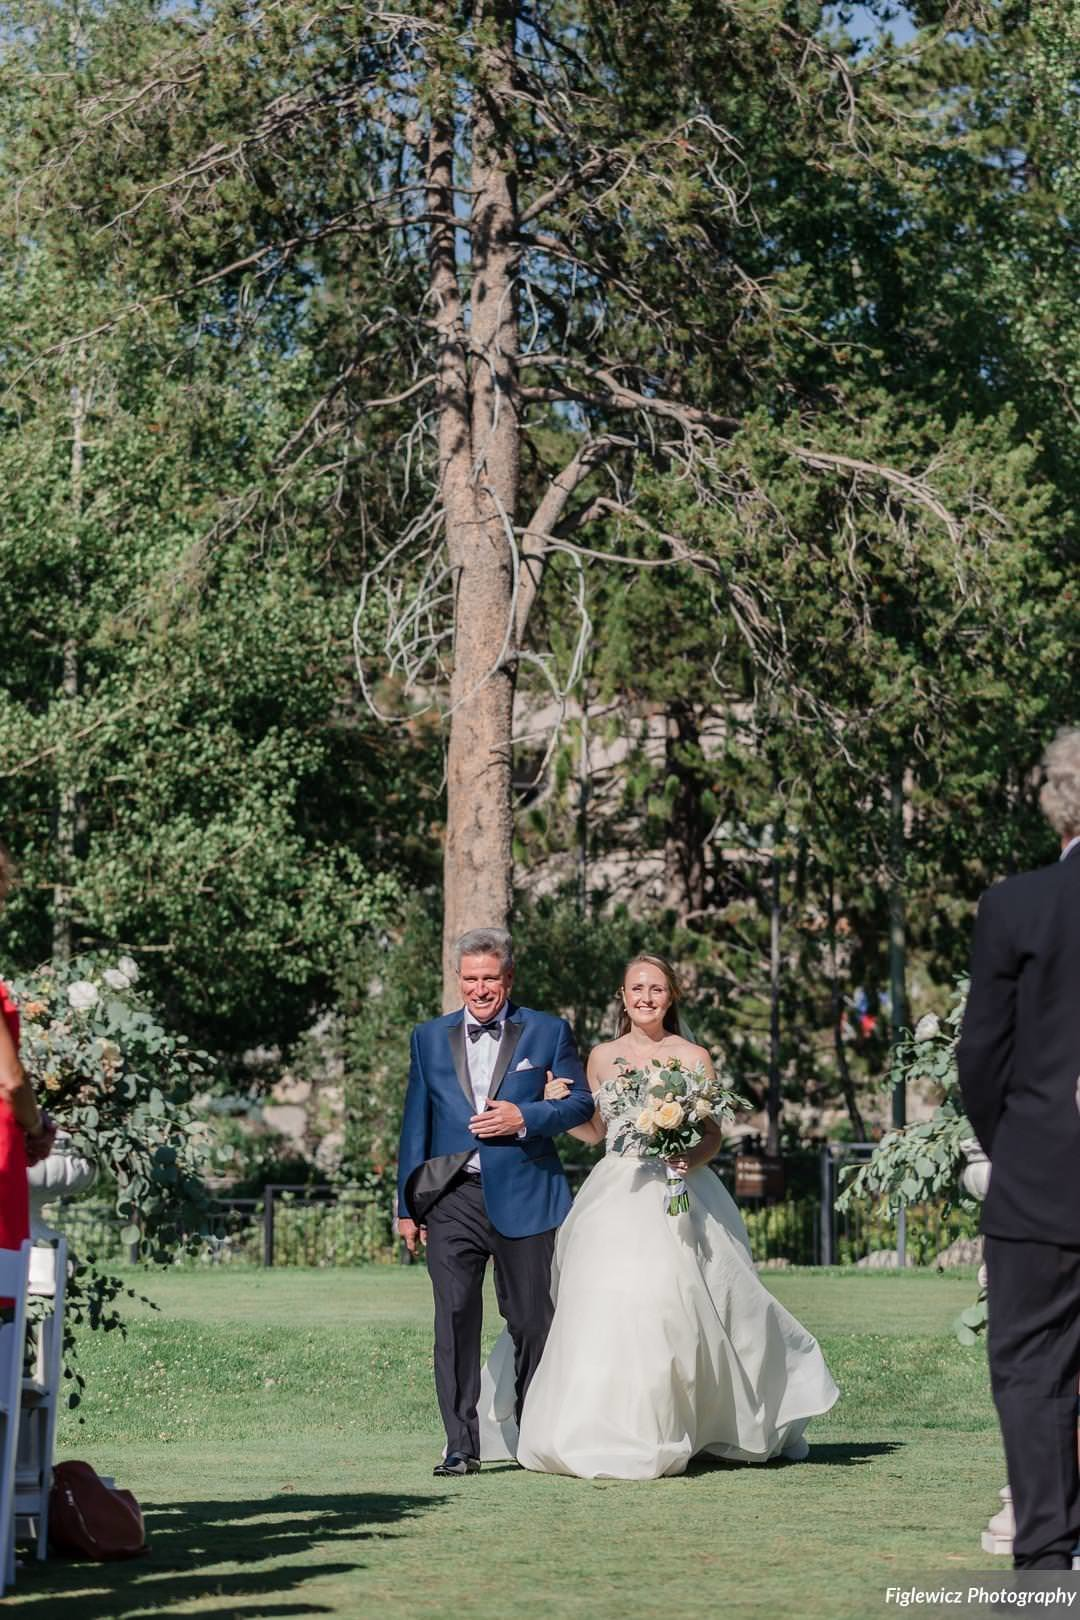 Garden_Tinsley_FiglewiczPhotography_LakeTahoeWeddingSquawValleyCreekTaylorBrendan00096_big